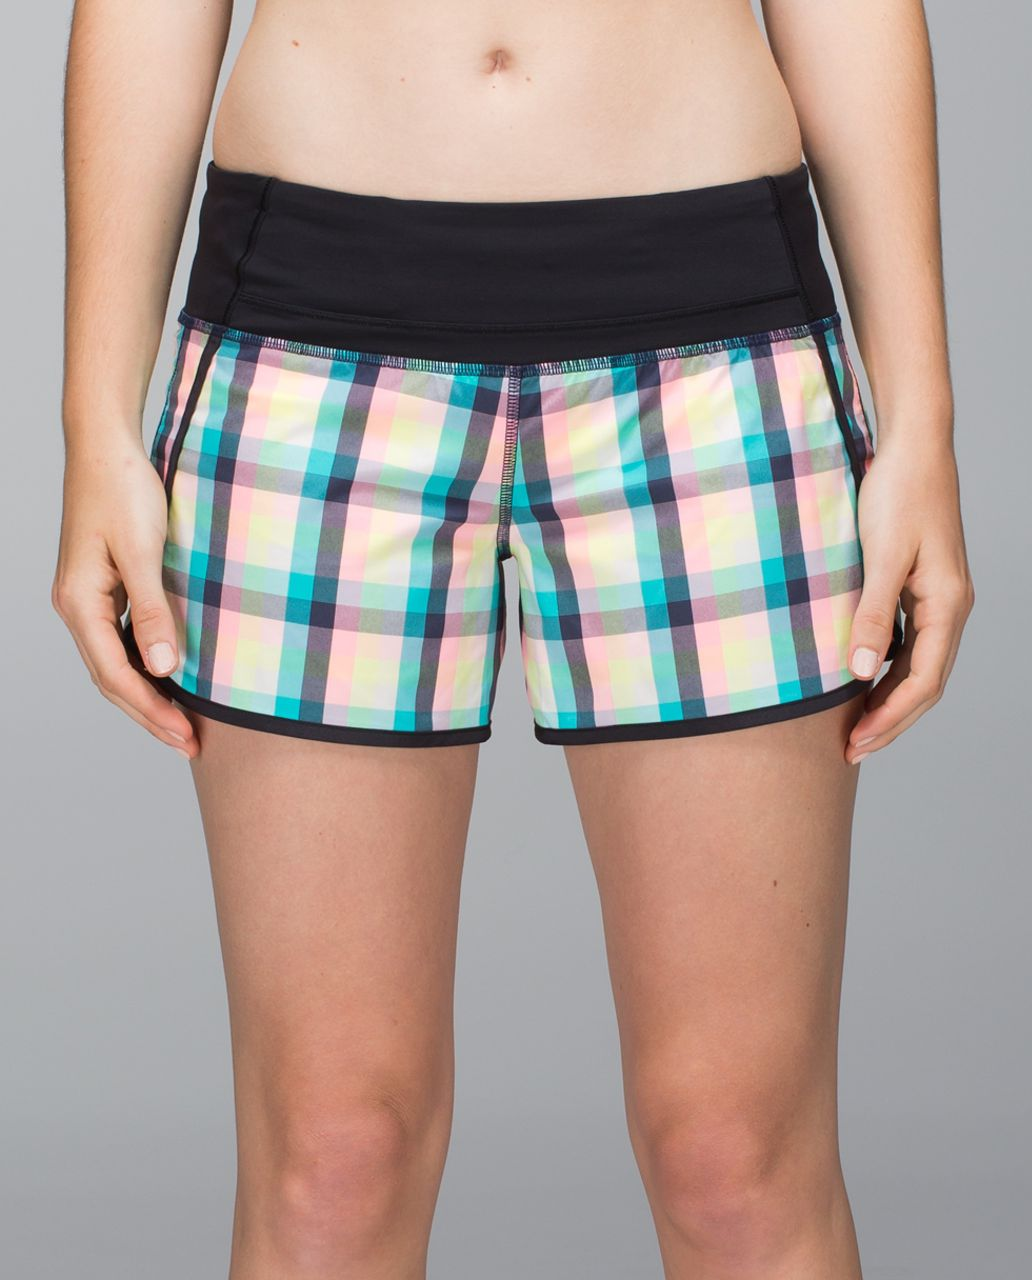 Lululemon Run Times Short *2-way stretch - Wee Wheezy Check Bleached Coral Cadet Blue / Black